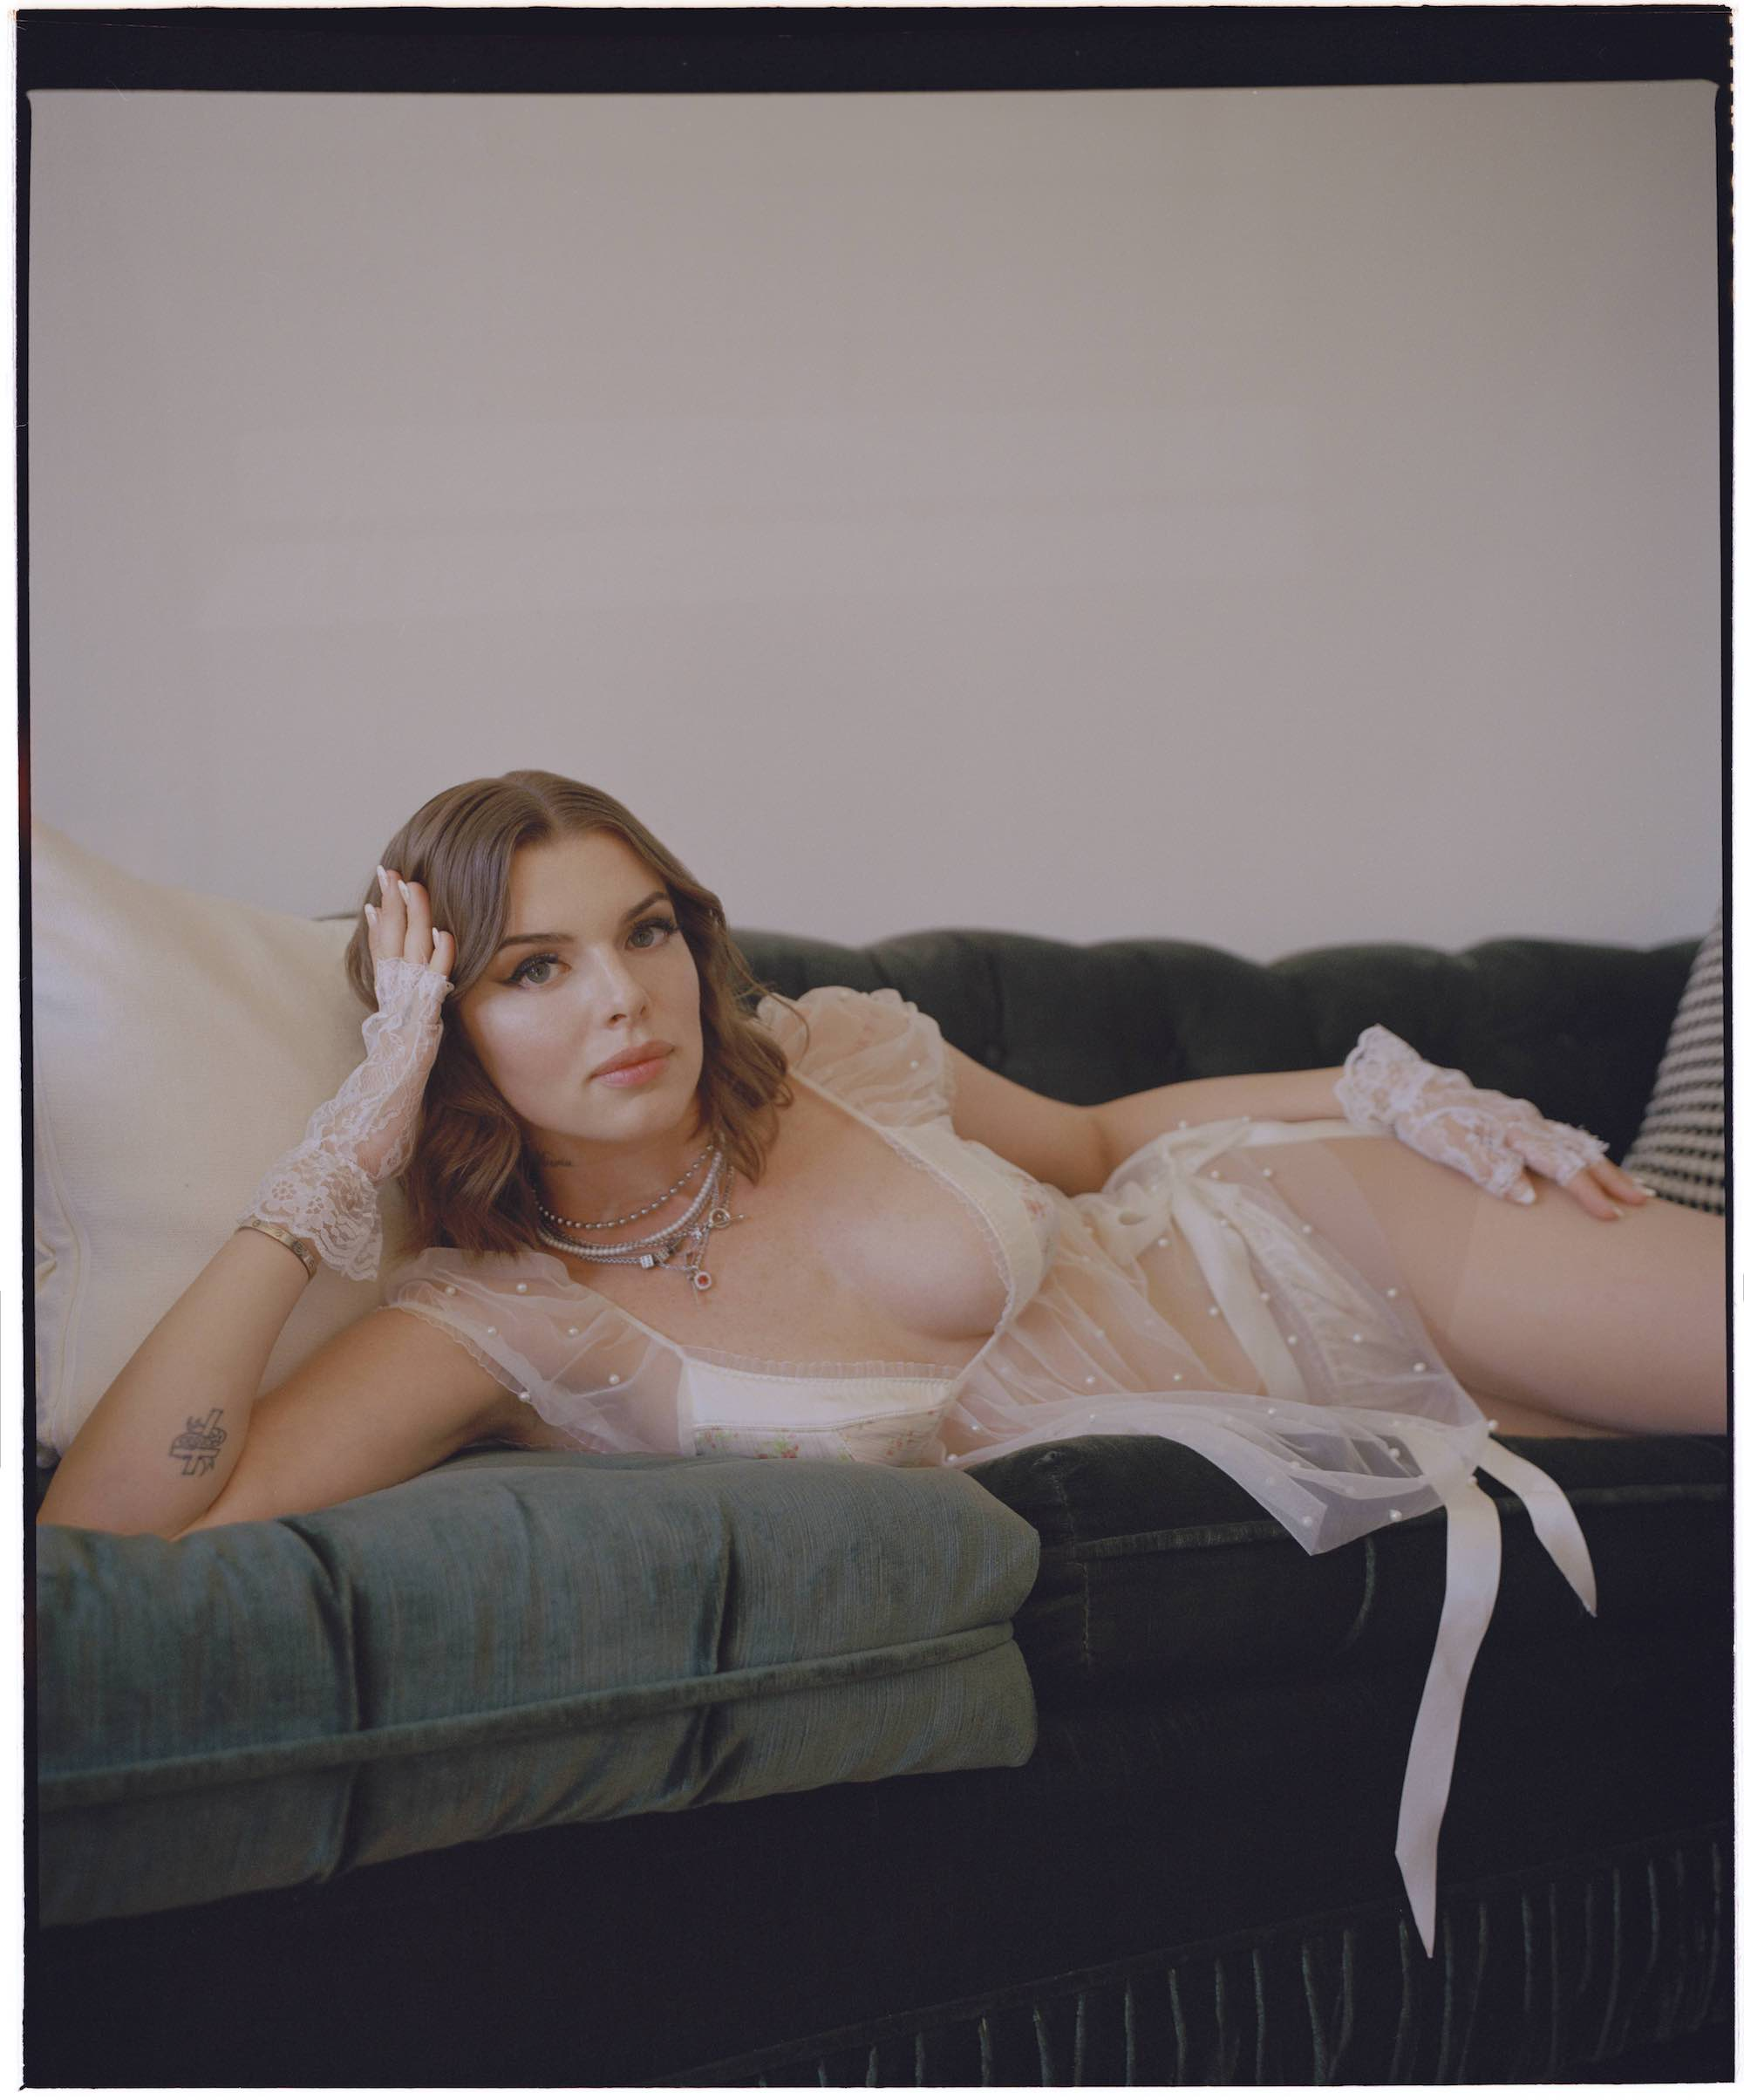 j Julia Fox in A24's Uncut Gems for the Winter issue of Wonderland lingerie